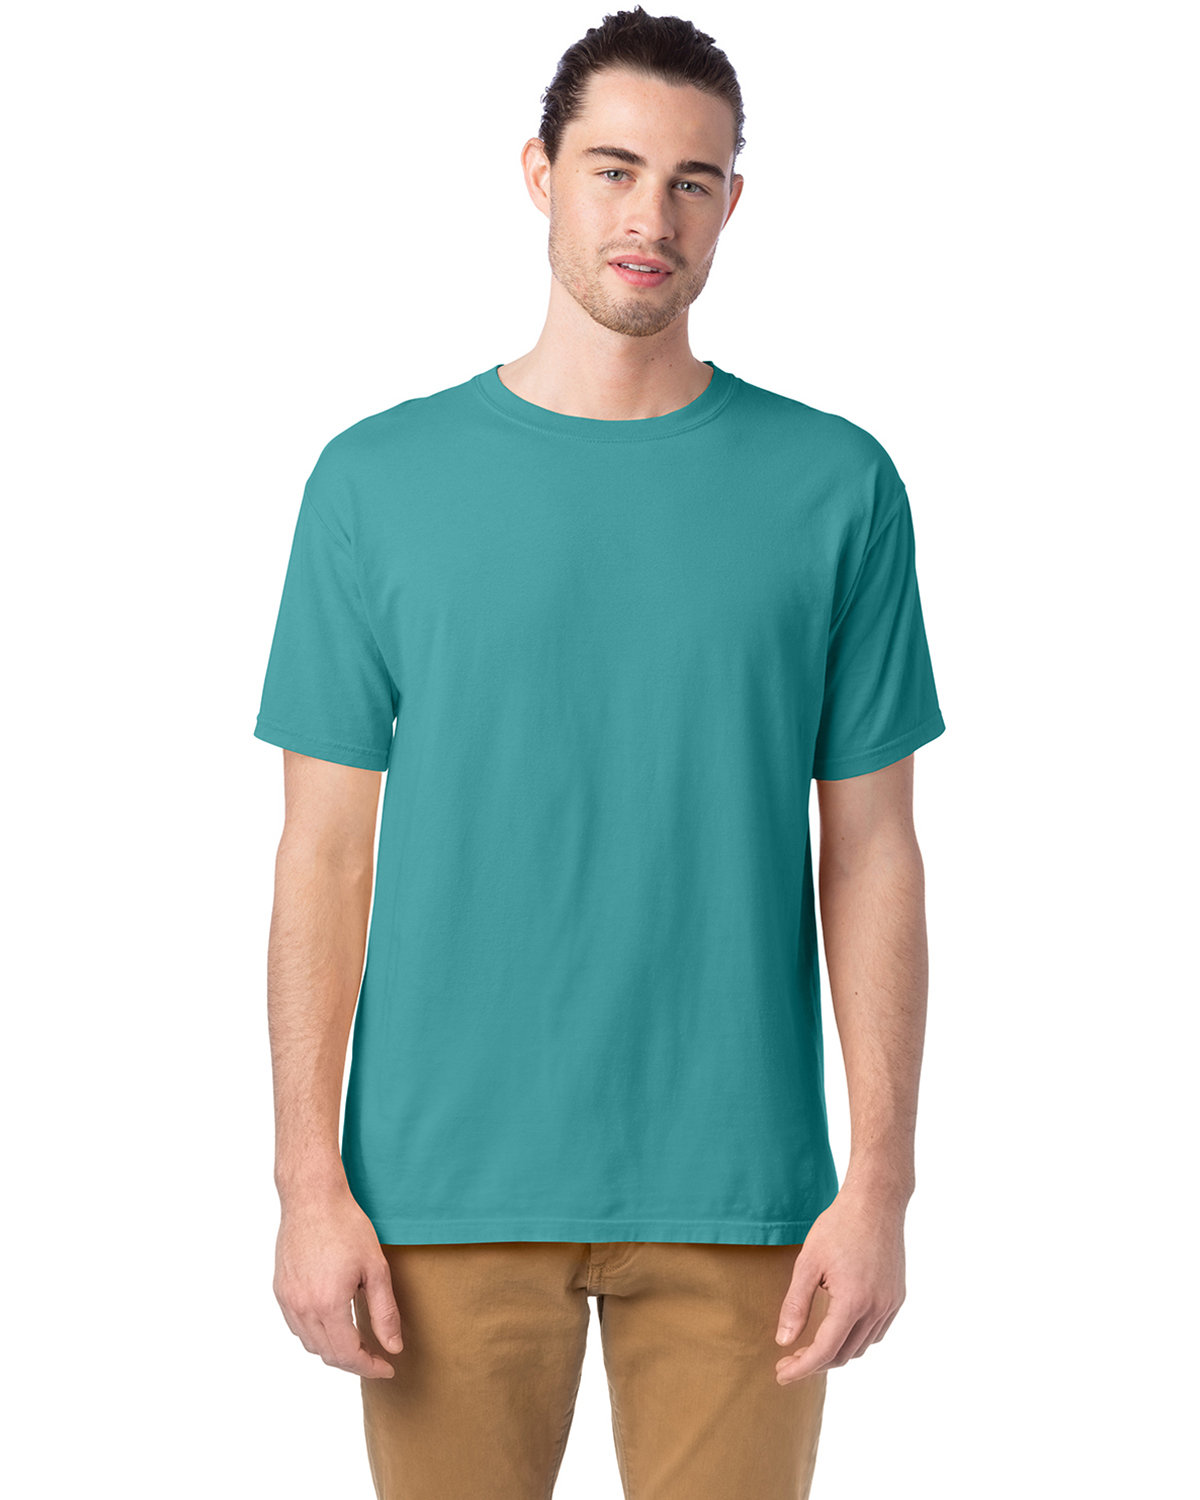 ComfortWash by Hanes Men's 5.5 oz., 100% Ringspun Cotton Garment-Dyed T-Shirt SPANISH MOSS